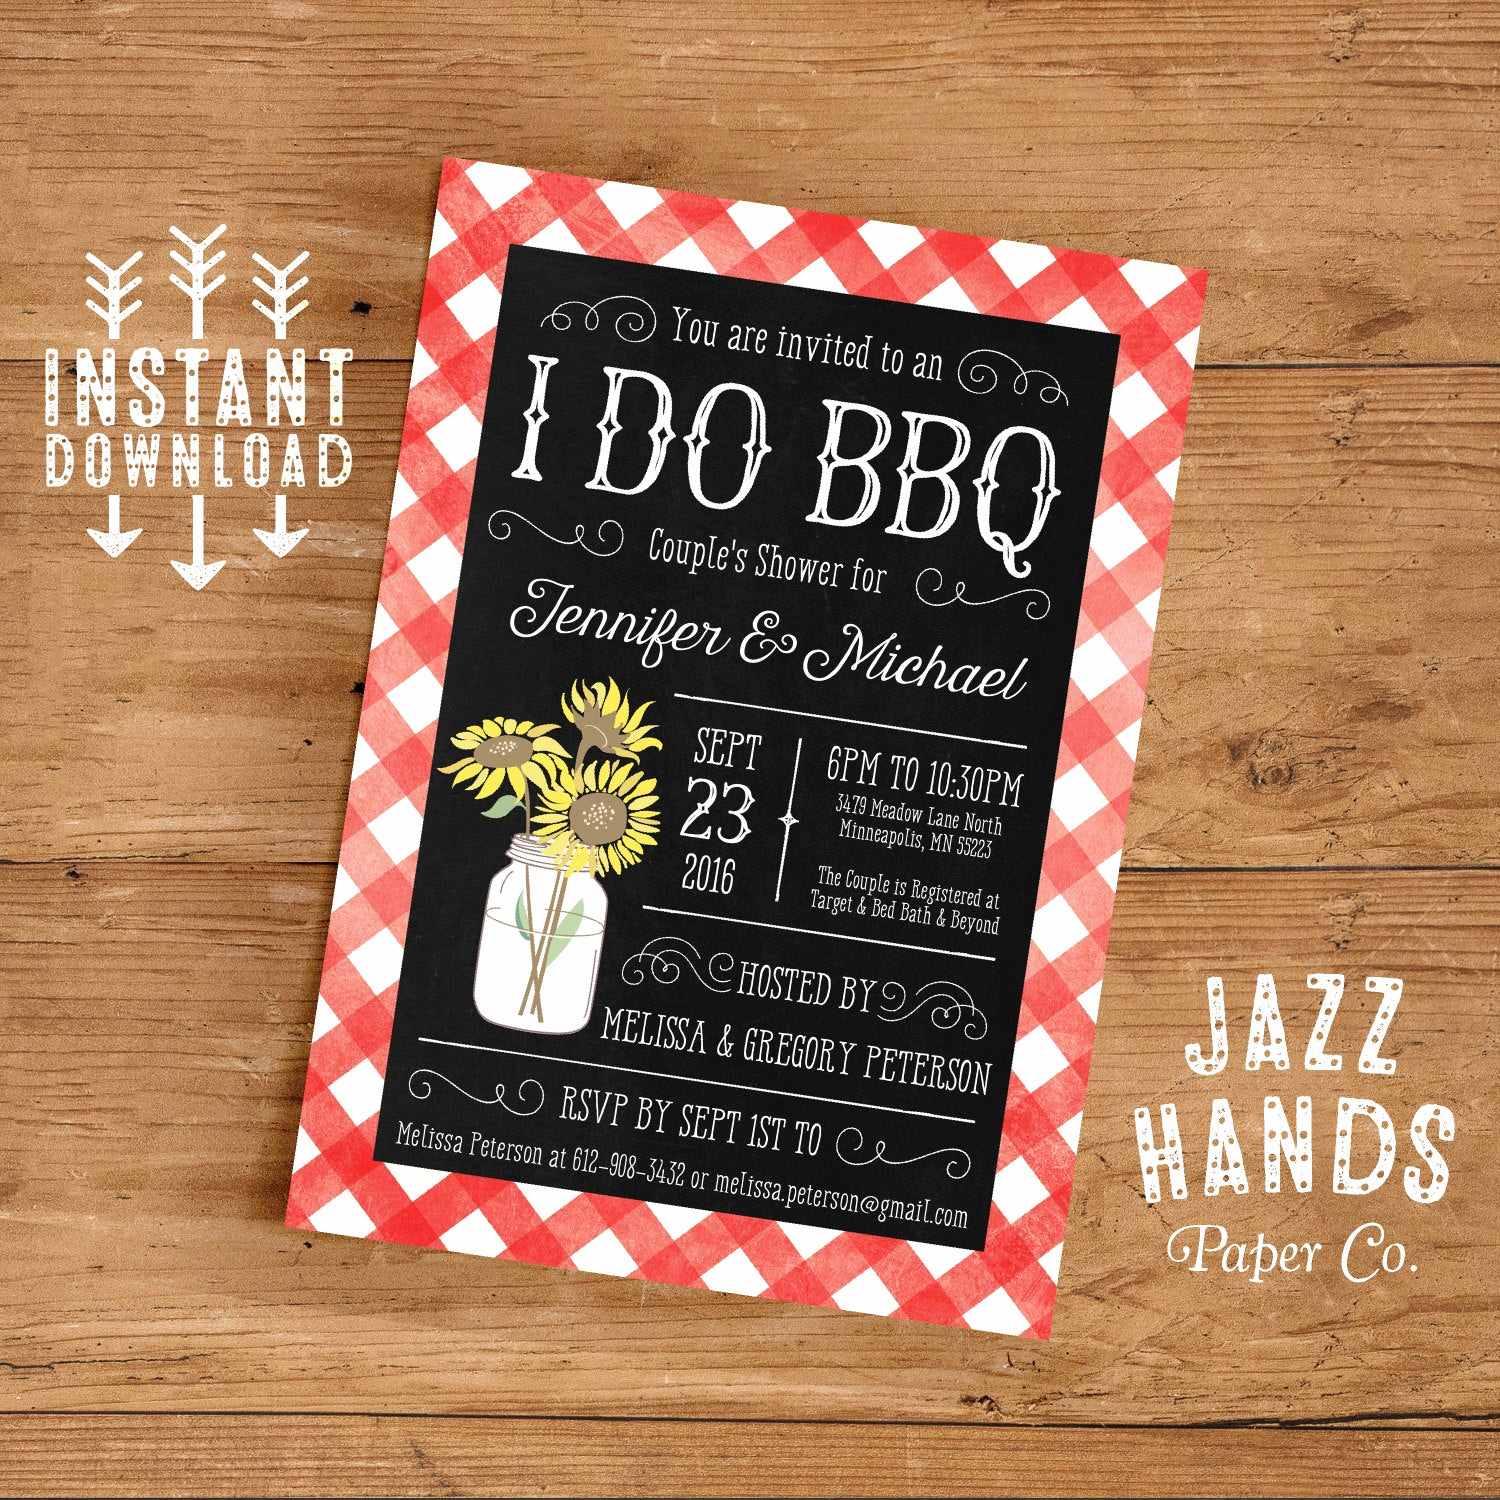 Couples Shower Invitation Templates Fresh Printable I Do Bbq Couples Shower Invitation Template Diy